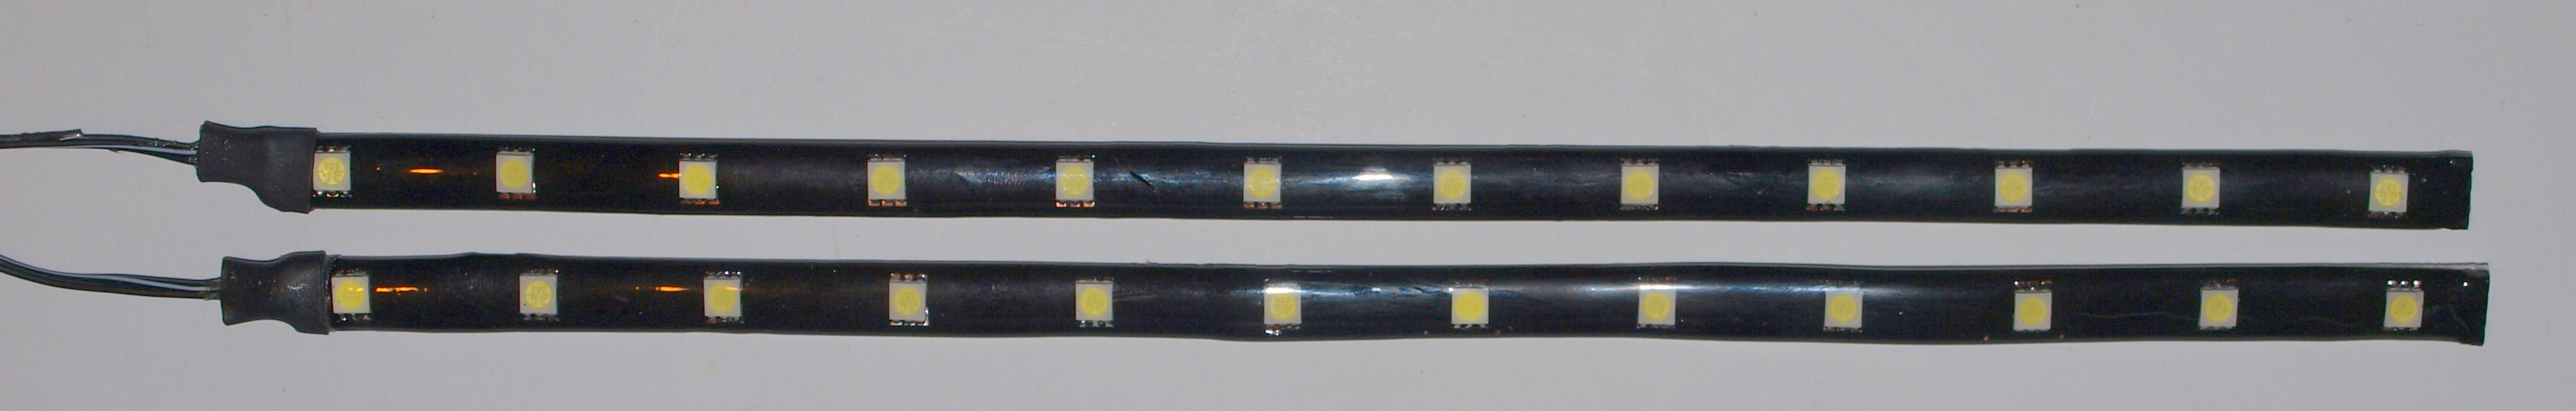 2 x wei er smd led strip 30cm 12 smd tagfahrlicht 5050 ebay. Black Bedroom Furniture Sets. Home Design Ideas